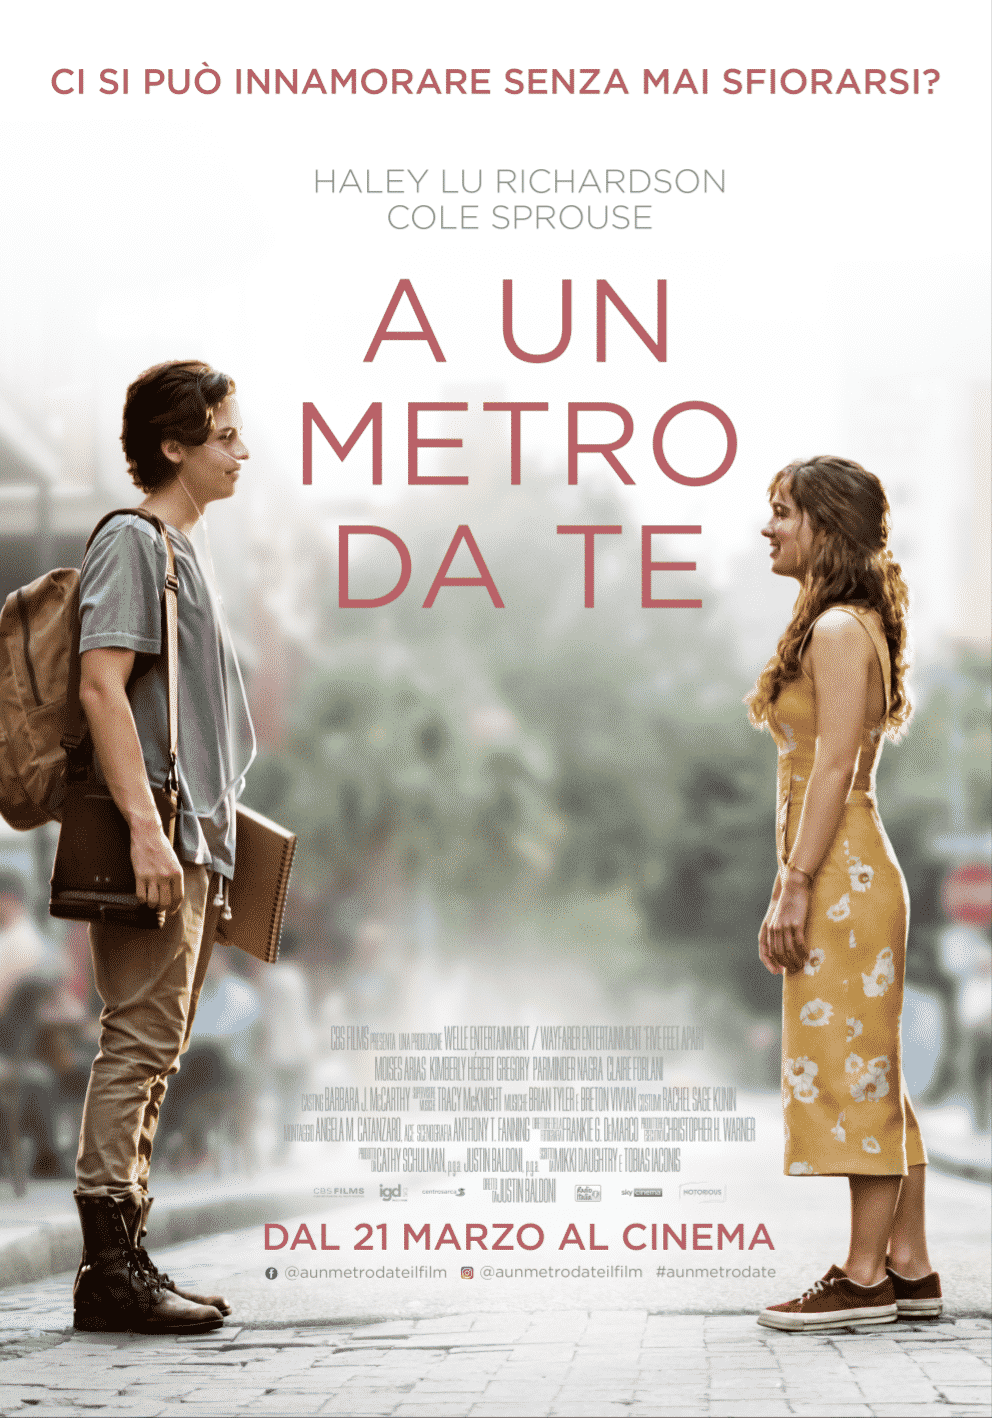 a un metro da te cinematographe.it